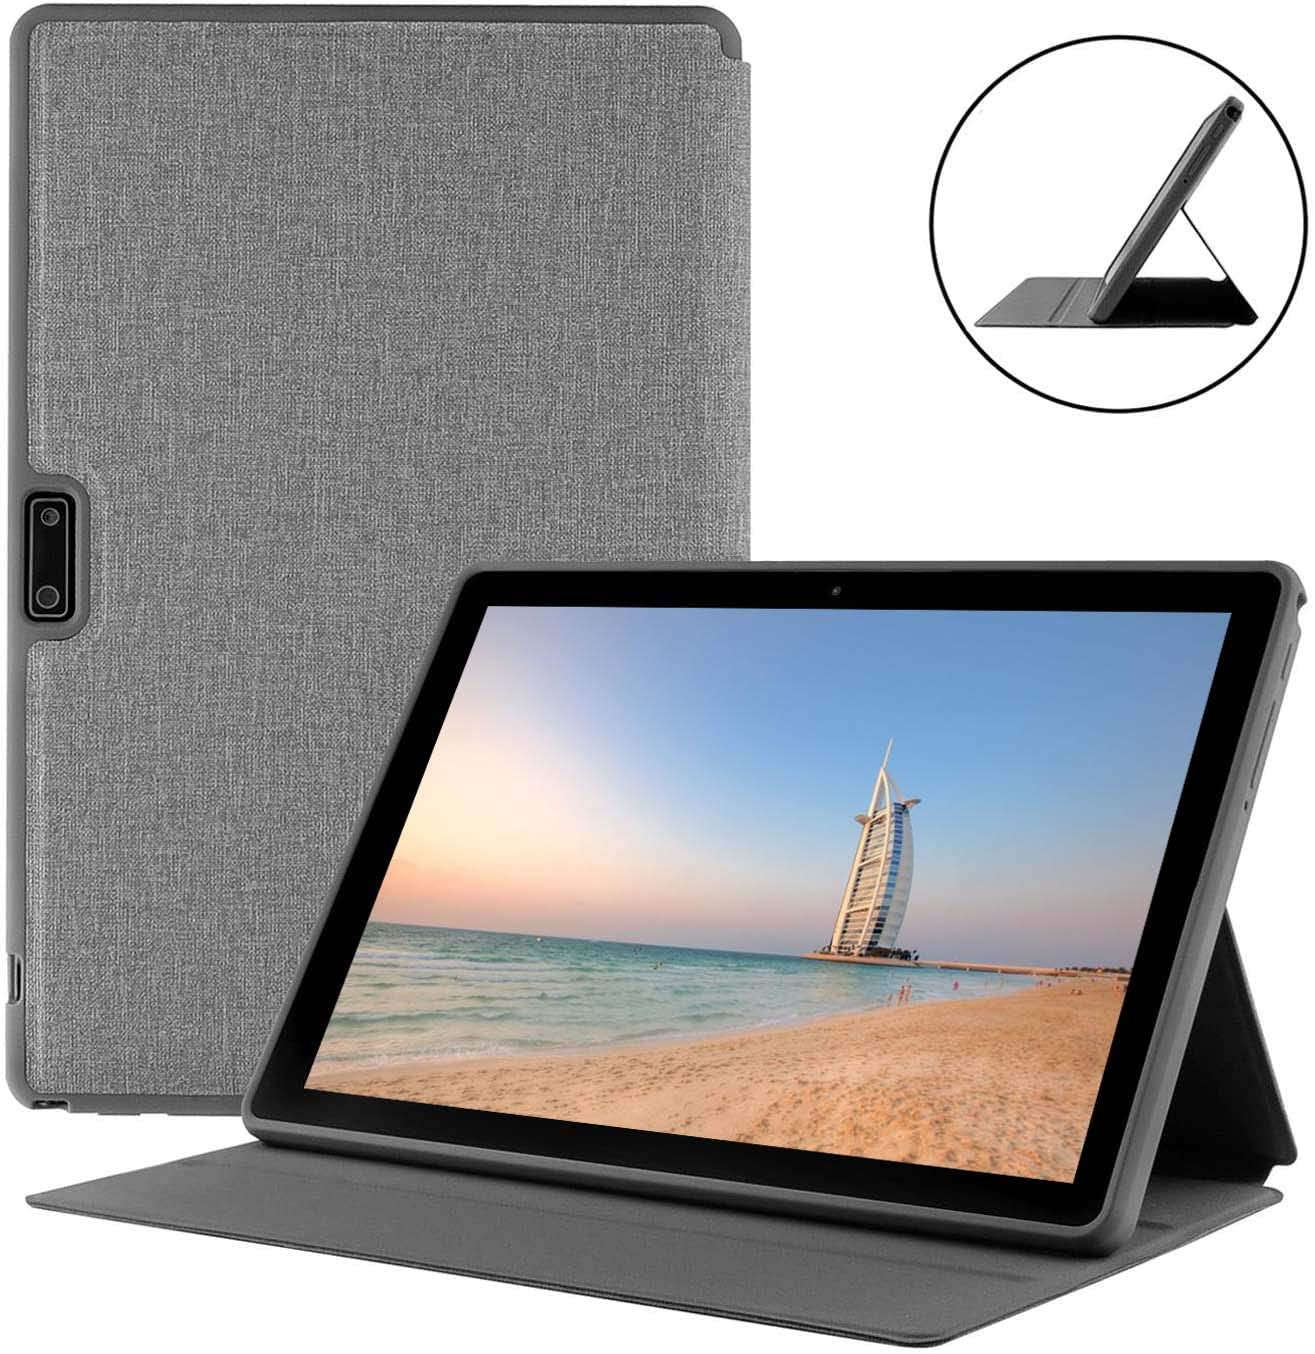 Tablet Case with Stand, Leather Protective Cover for WECOOL 10 Inch 3G Tablet, Shockproof Light Weight Holder